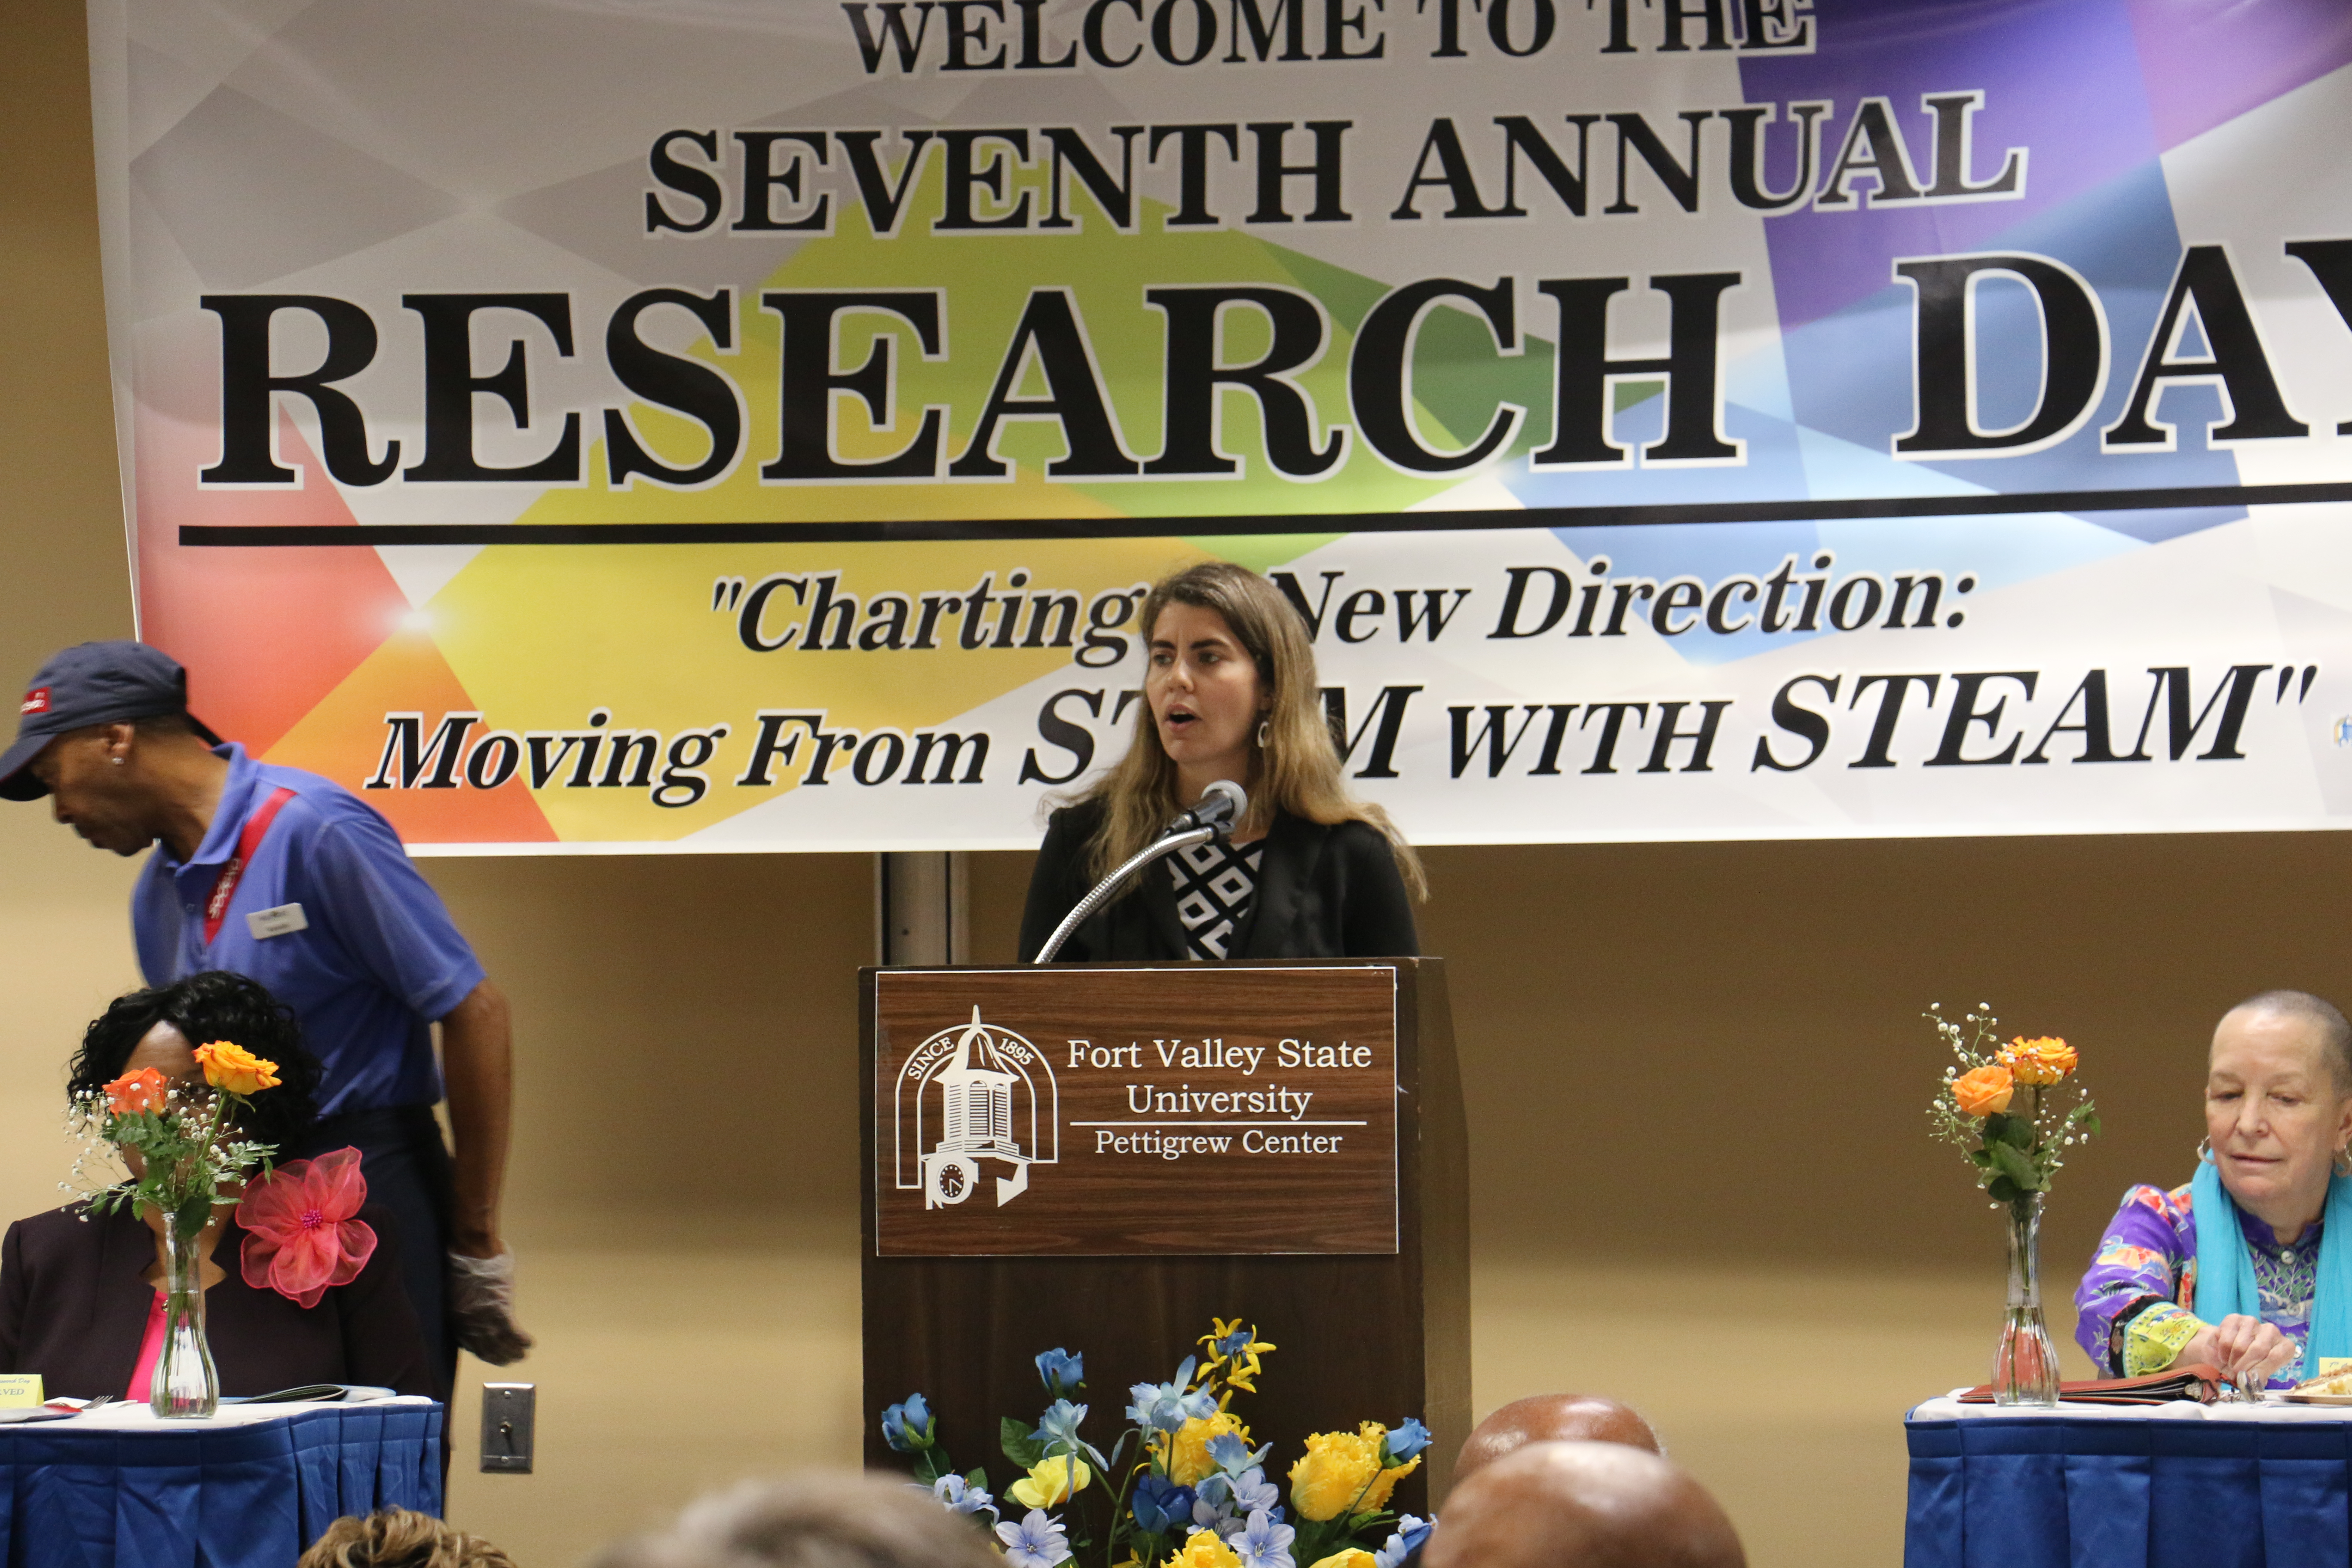 Dr. Celia Dodd speaks at the 7th Annual Research Day